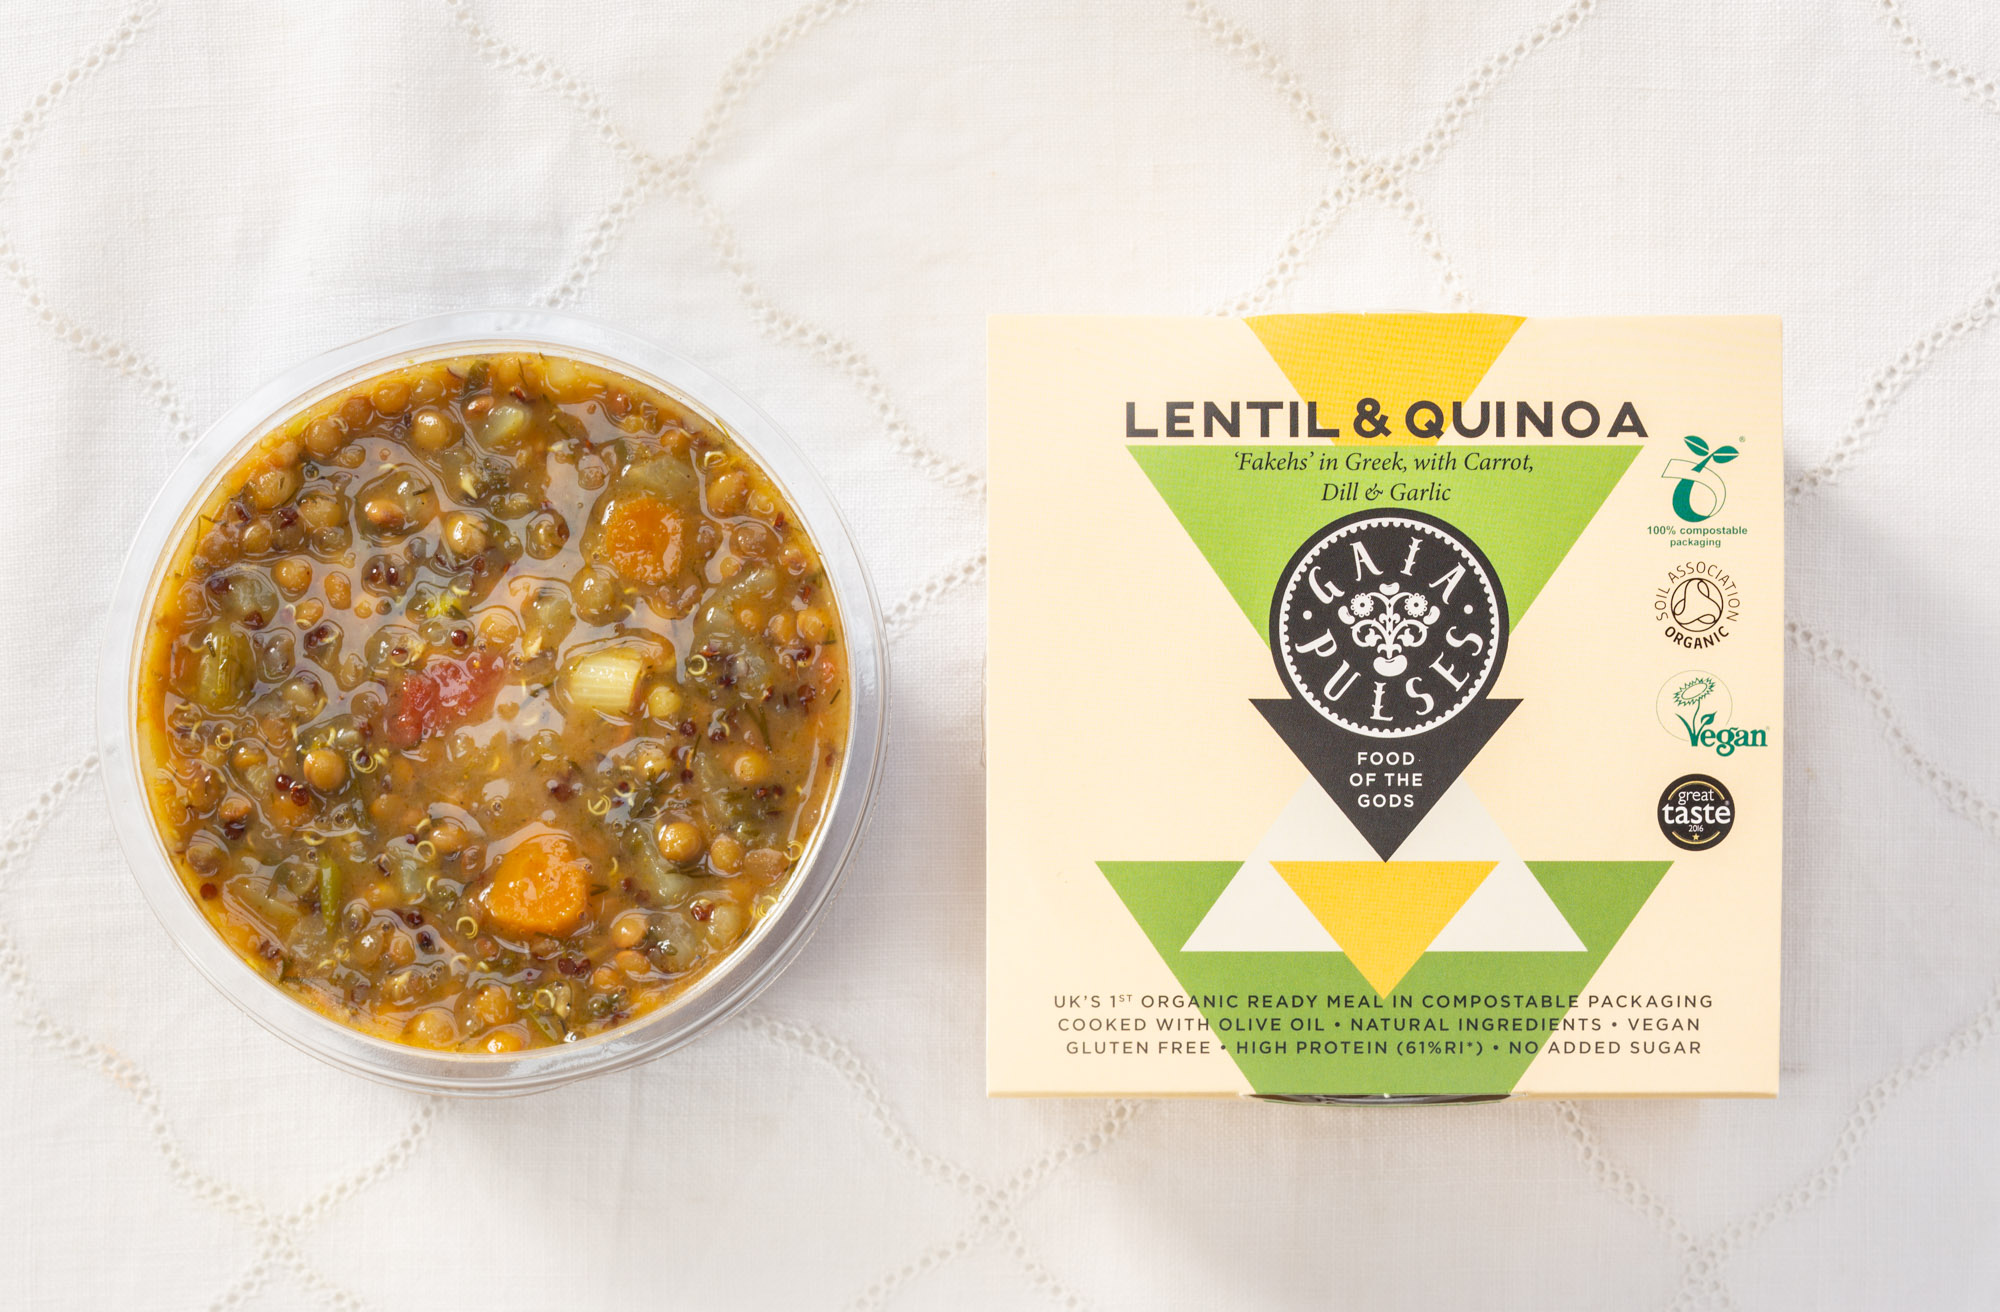 Inspired by 'Fakehs', a typical Greek Lentil stew. The Gaia version is enriched with sprouted Red Quinoa for added protein - Apple Cider Vinegar, Garlic, Extra Virgin Olive Oil, Spring onion, Wild Thyme, Oregano, Turmeric and Dill. This dish is full of Iron, Magnesium, Vitamin C, Protein, Fibre and Antioxidants.